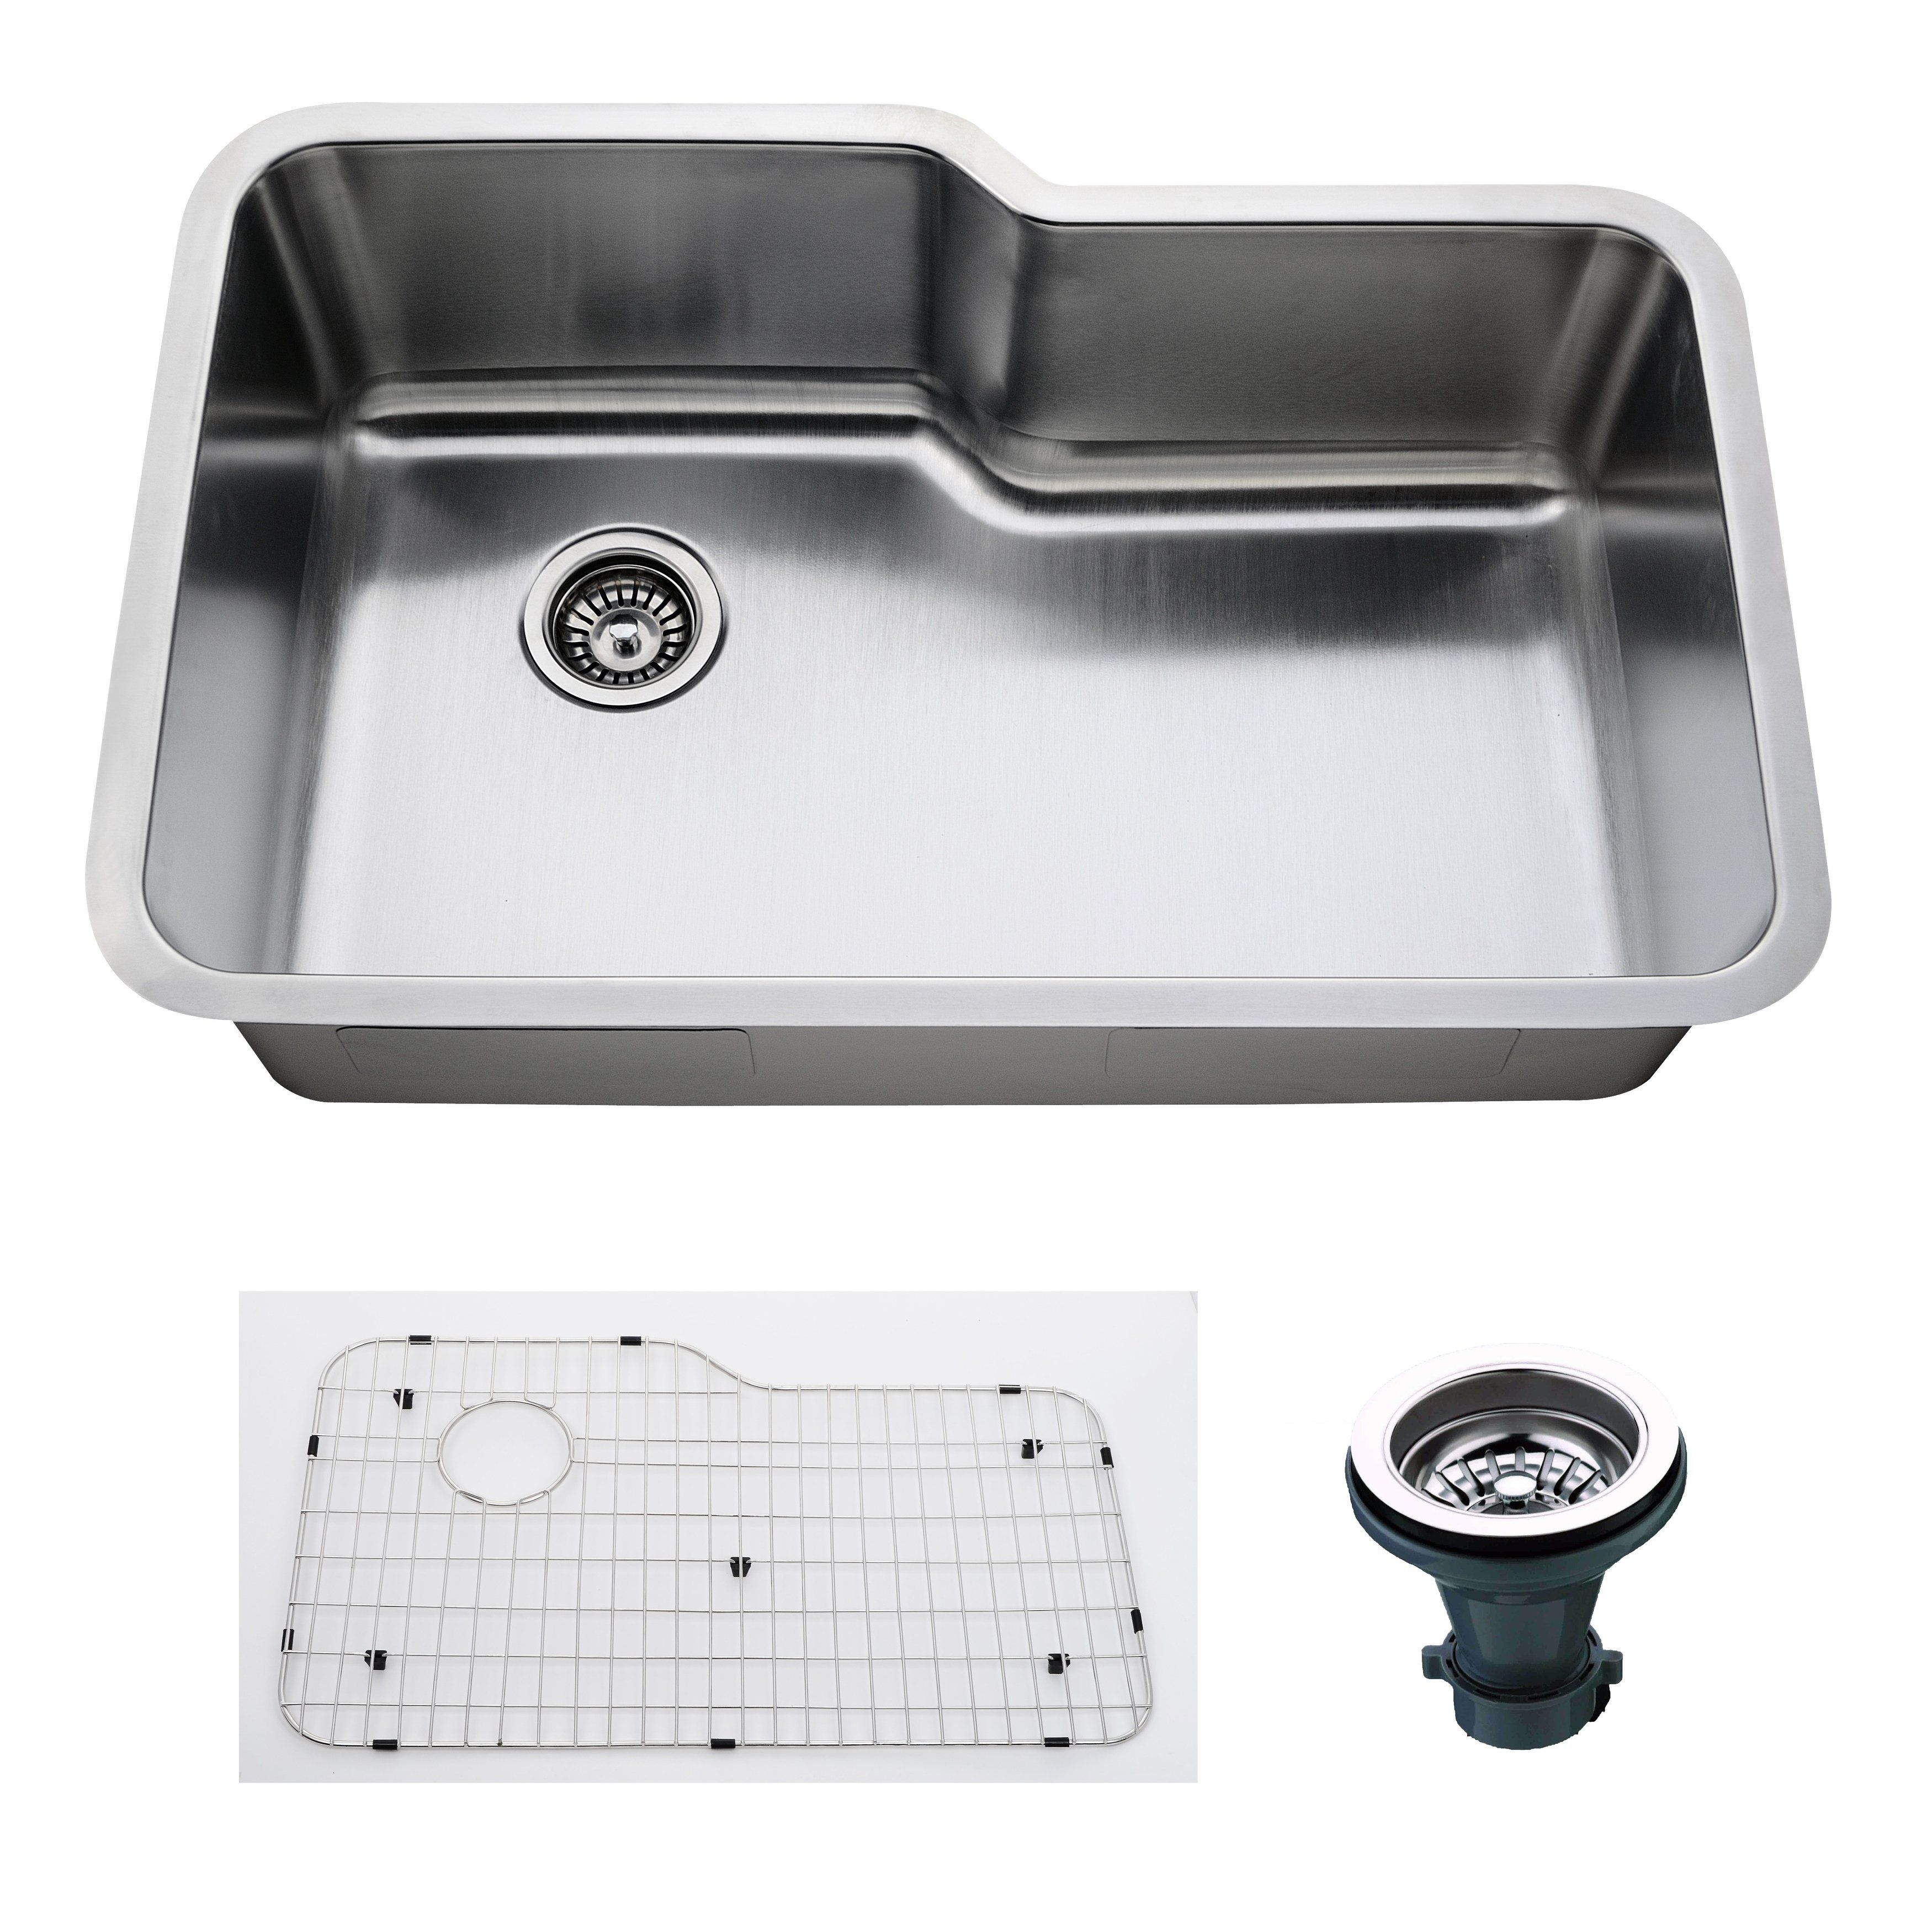 Empire 32 Inch Undermount Single Bowl 16 Gauge Stainless Steel Kitchen Sink With Soundproofing Stainless Steel Kitchen Sink Stainless Steel Kitchen Sink